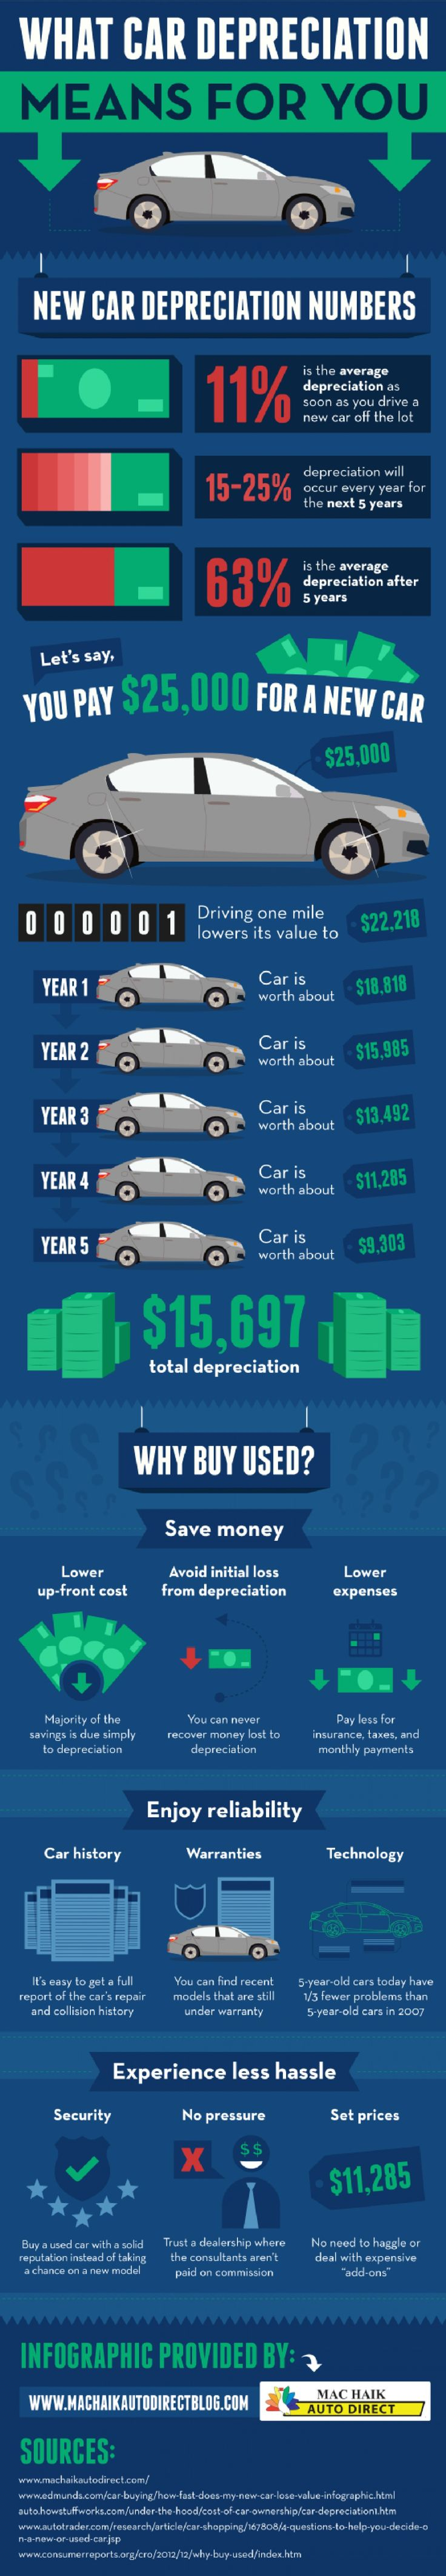 What Car Depreciation Means For You infographic New